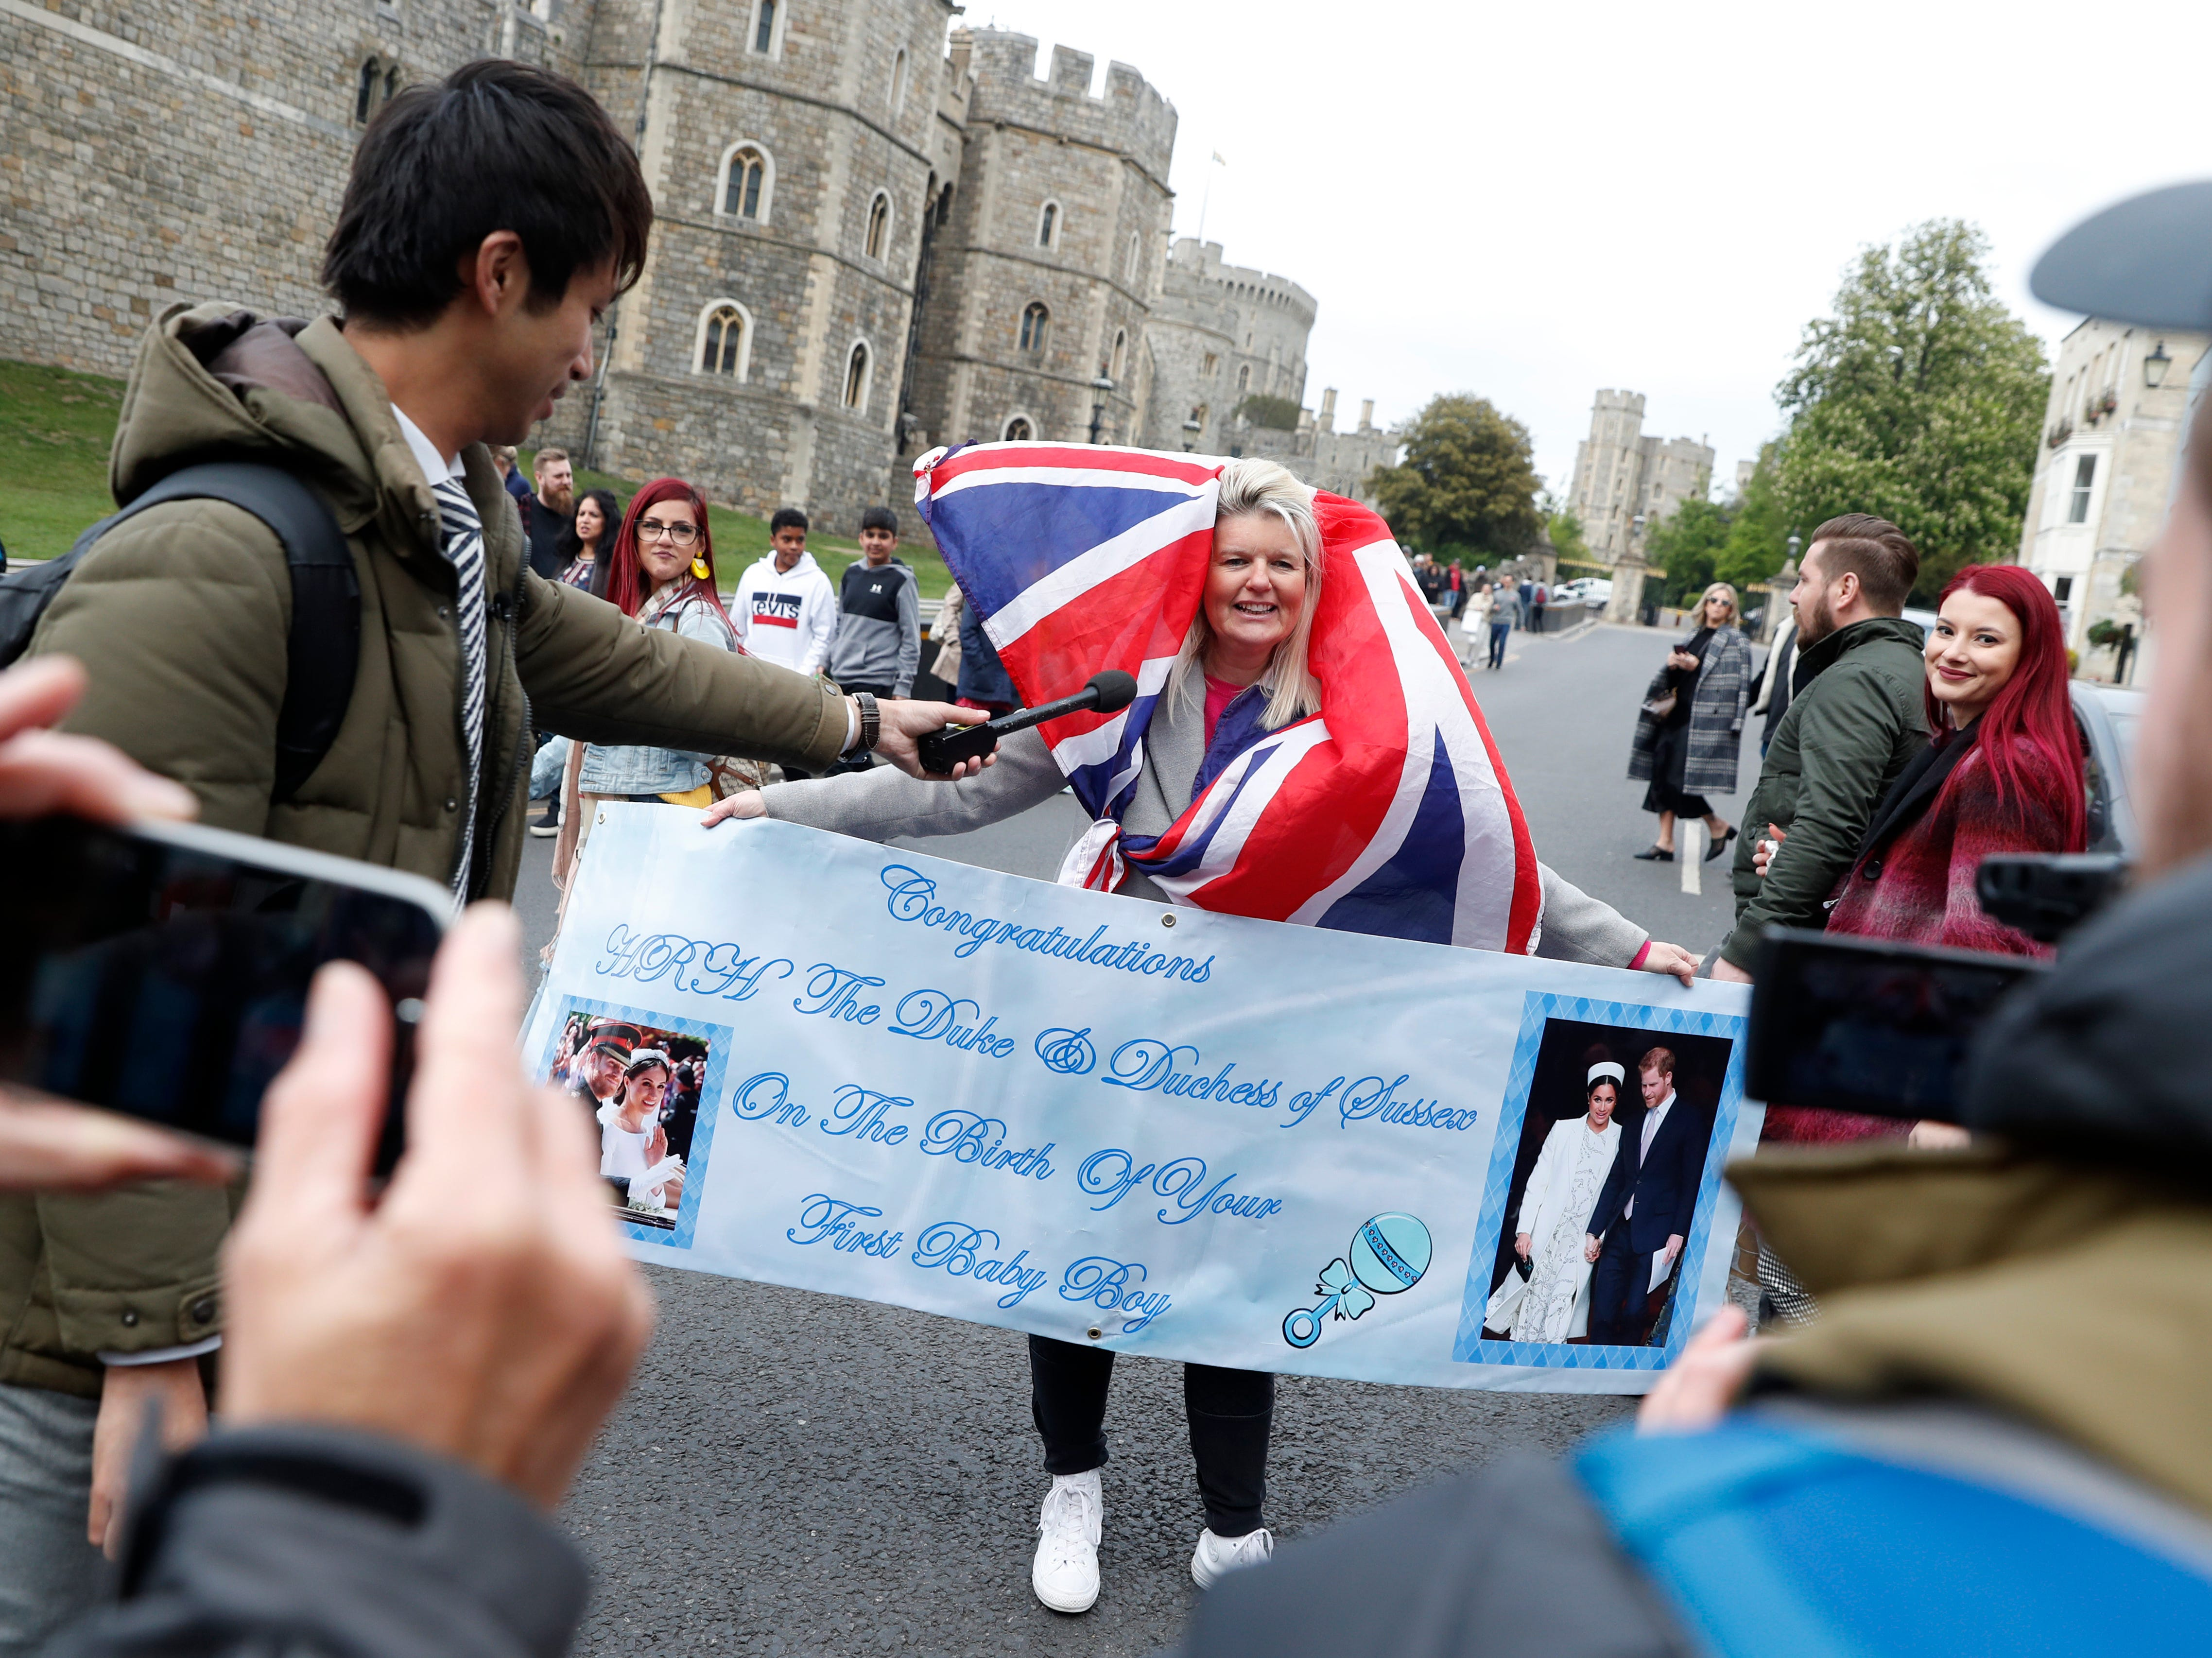 A royals fan carrying a banner is interviewed by a member of the media outside Windsor Castle Monday after the baby's birth was announced.